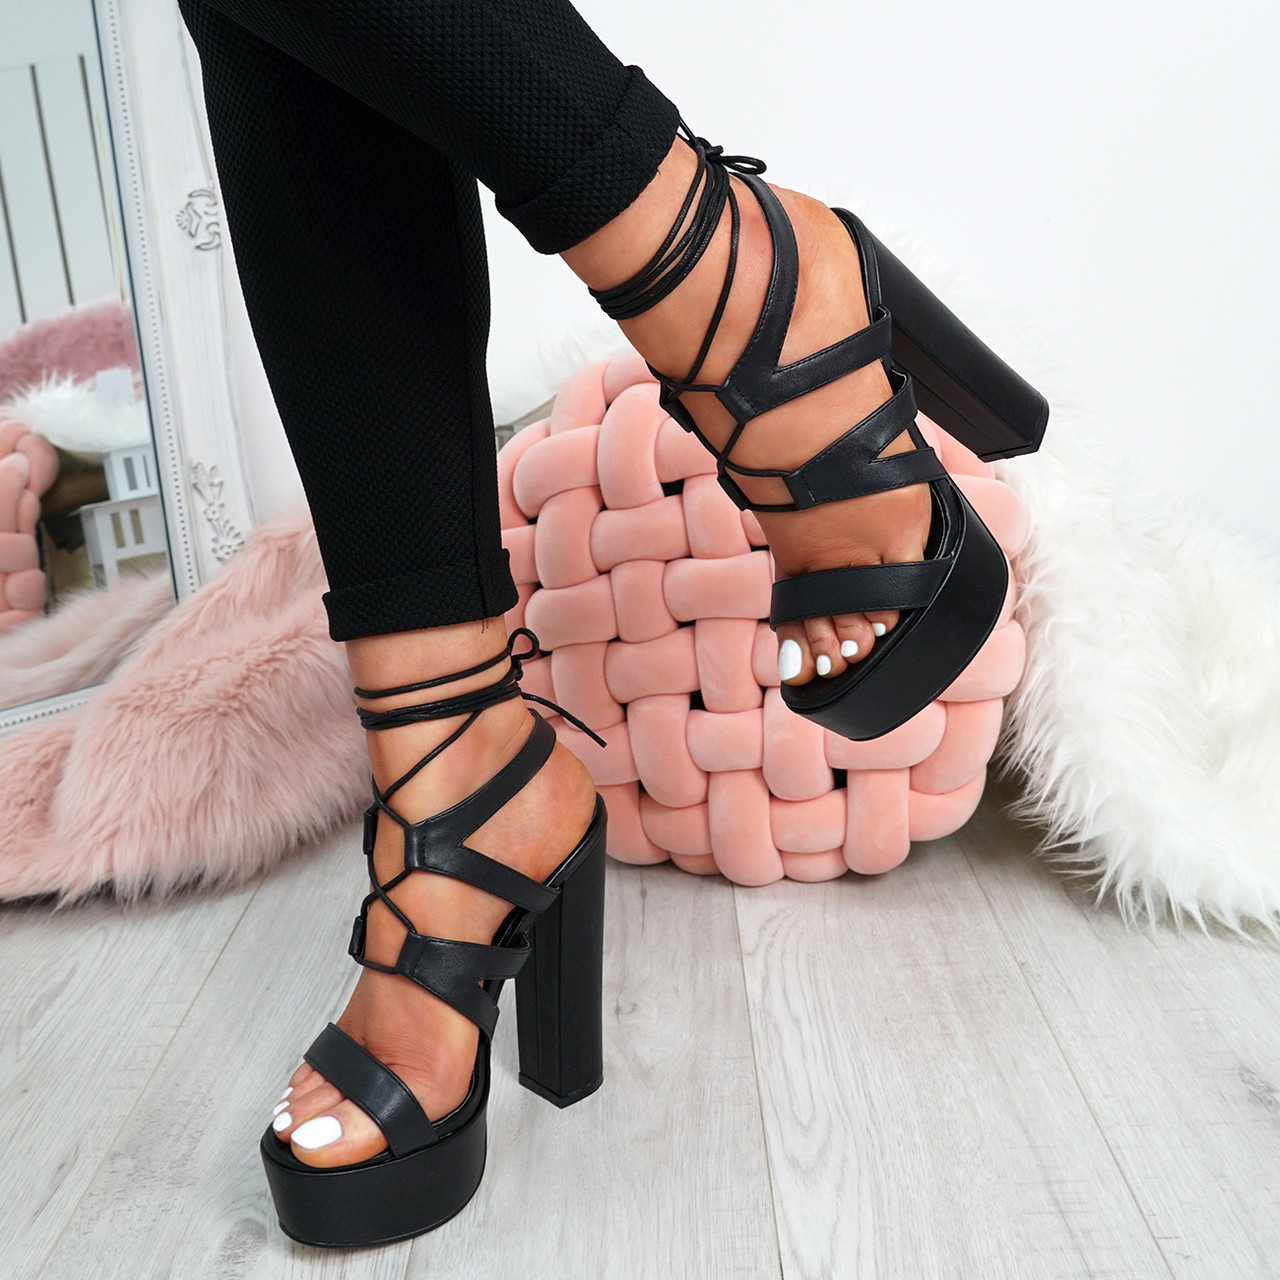 8840cea4d5b Kiera Cross Lace Black Pu Platform Sandals